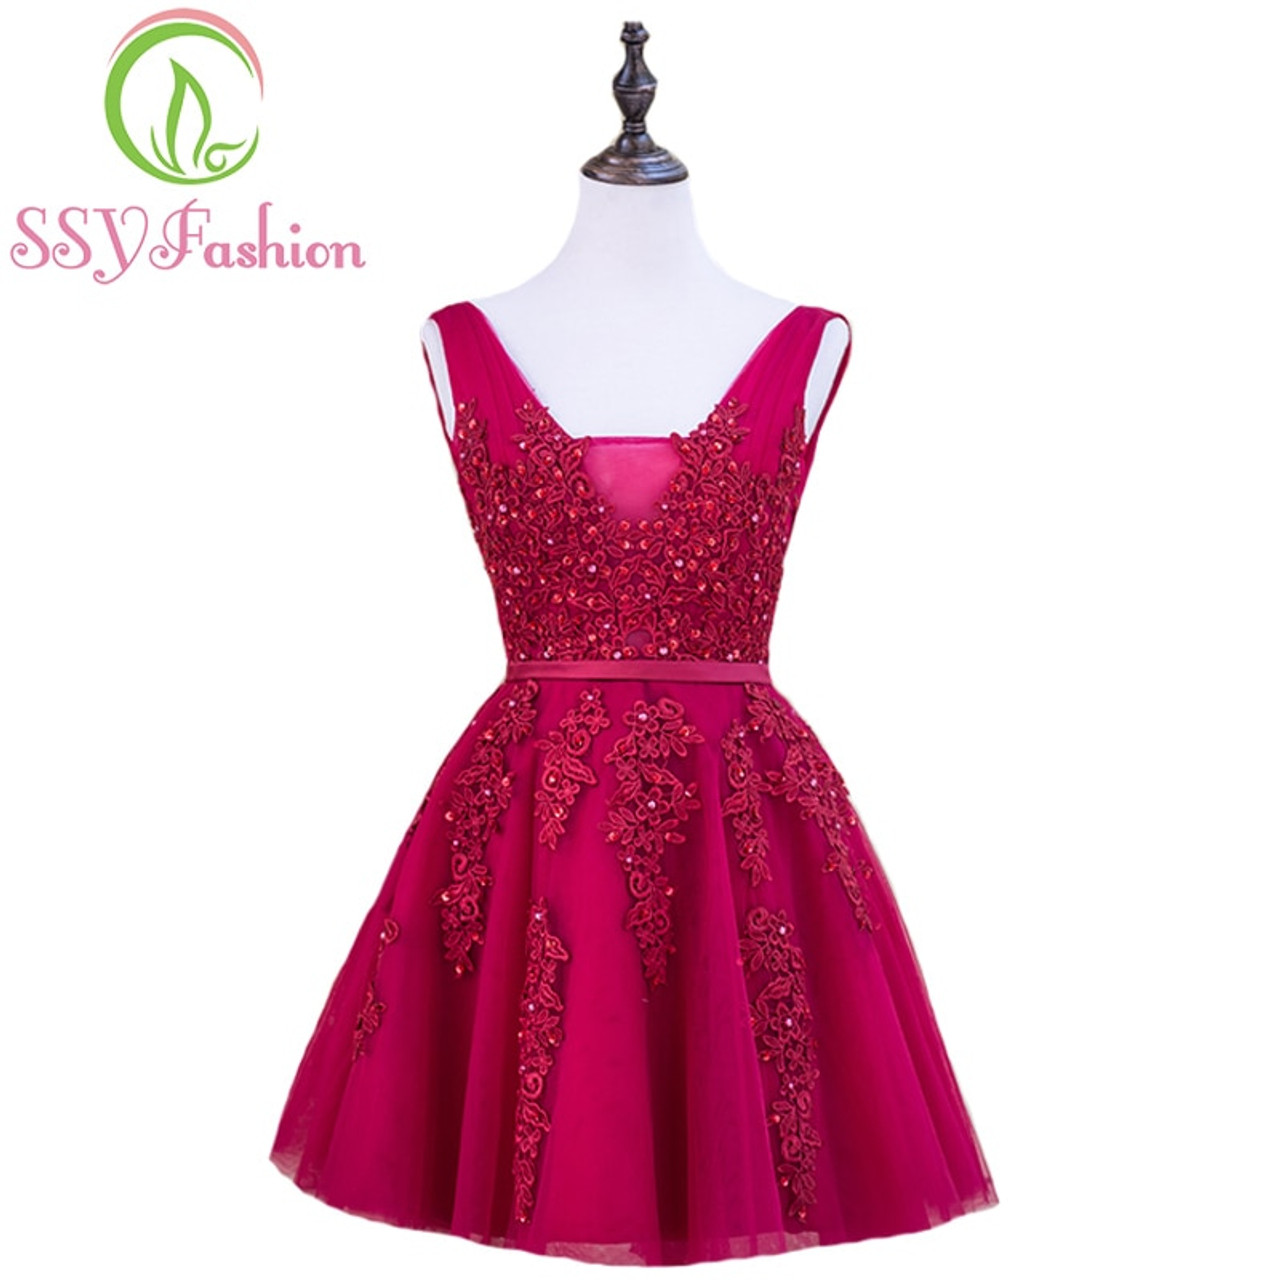 752553ab1f2 SSYFashion Sexy Short Cocktail Dresses Bridal Banquet Wine Red Lace  Backless Party Formal Dress Homecoming Dress ...